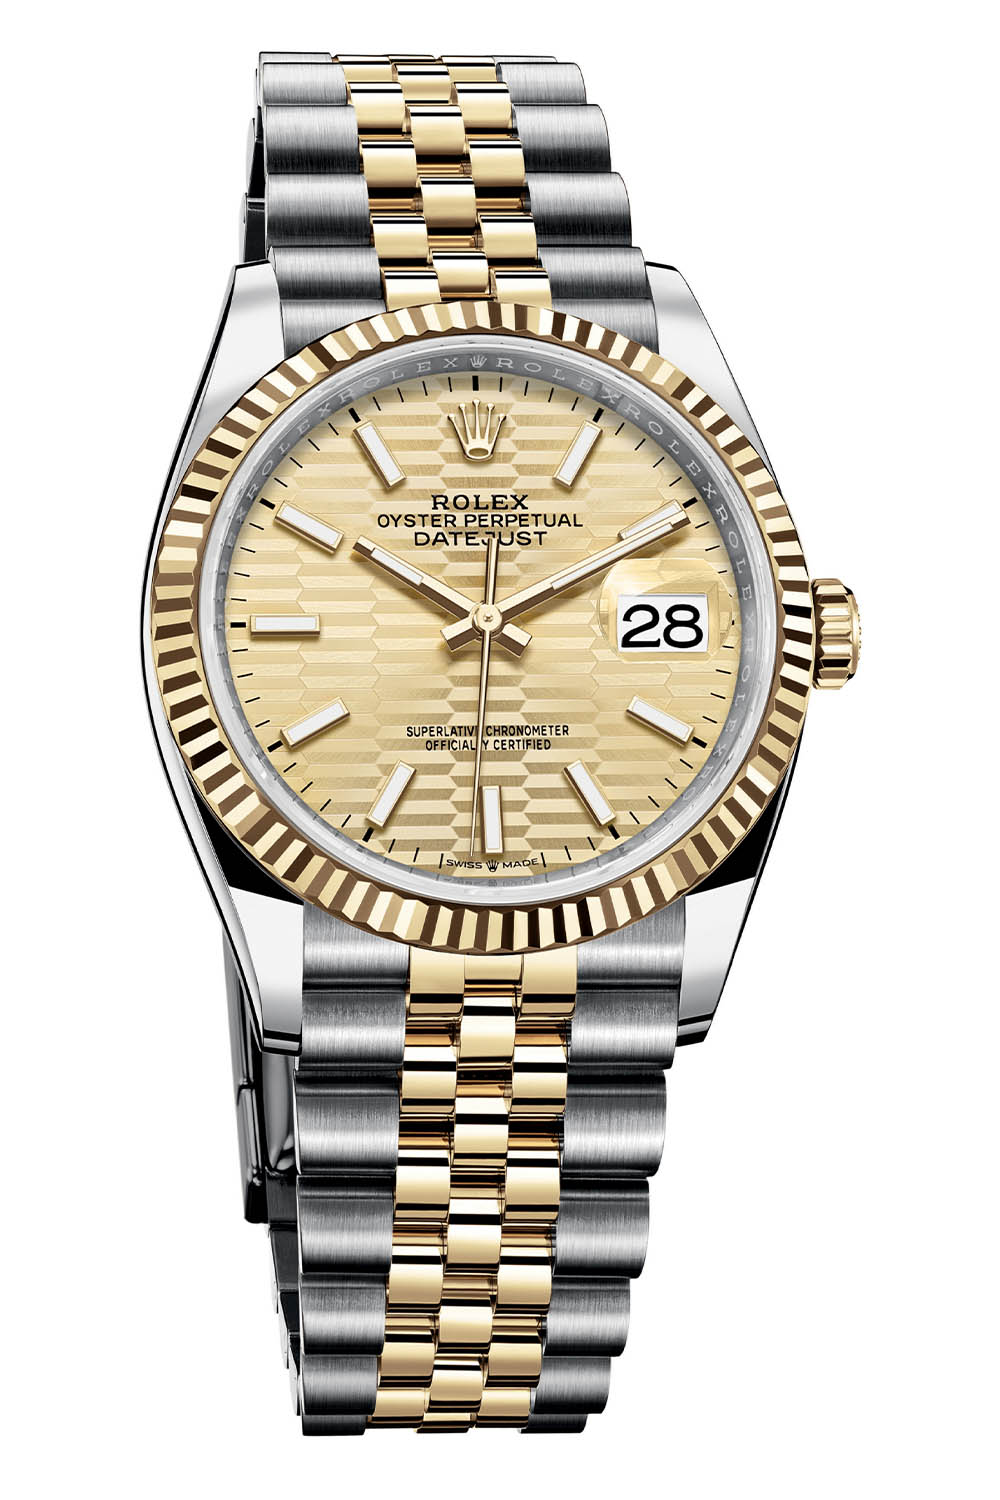 Rolex Oyster Perpetual Datejust 36 fluted dial